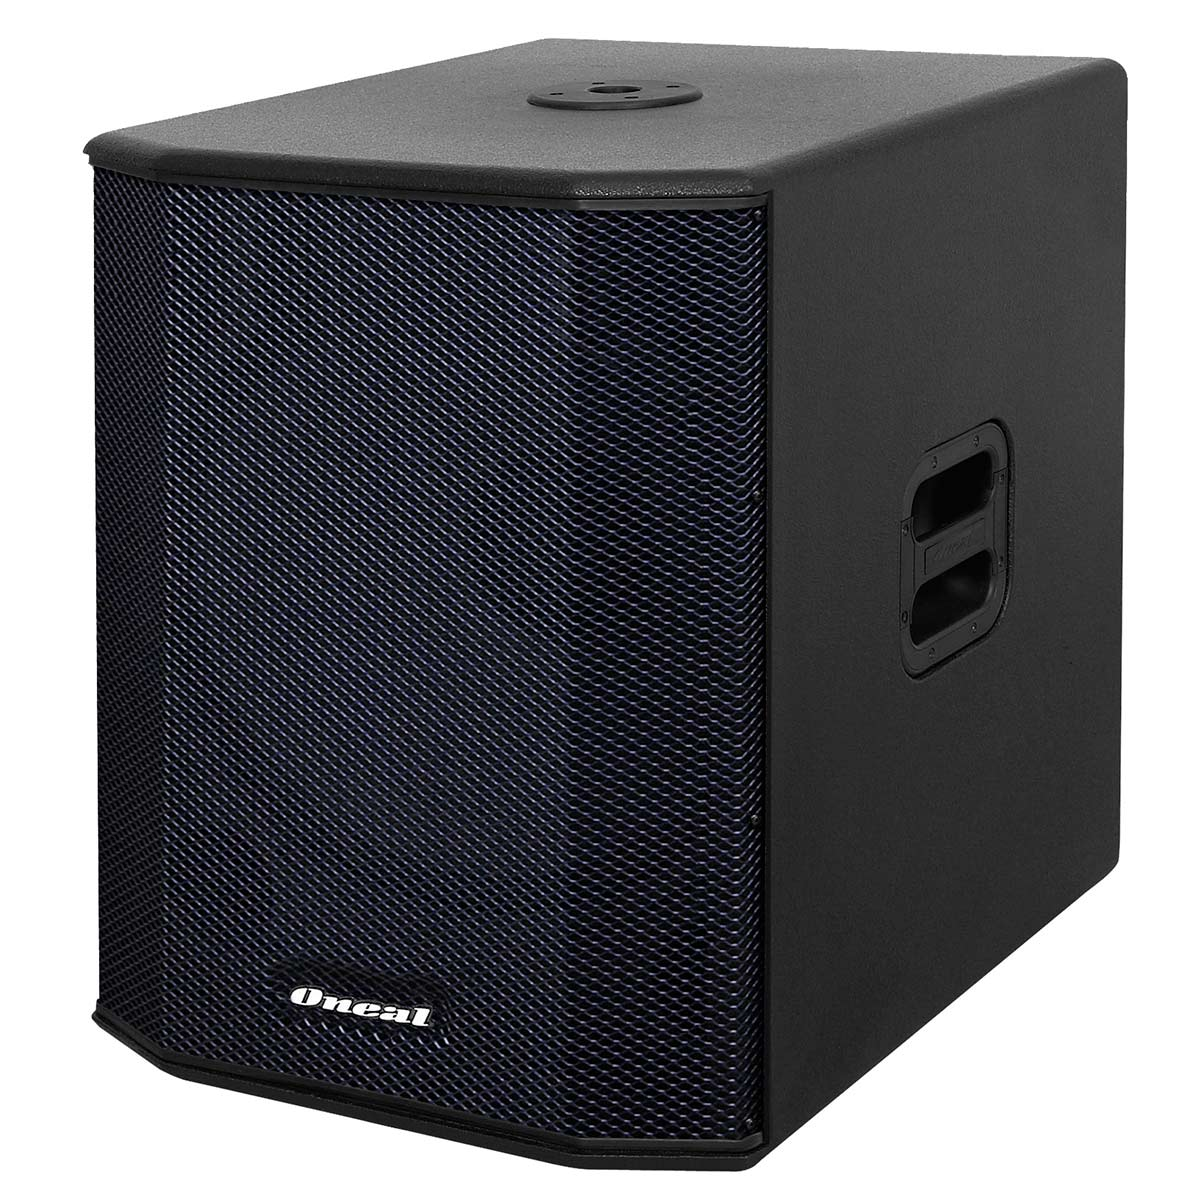 OBSB2500 - Subwoofer Passivo 450W OBSB 2500 - Oneal